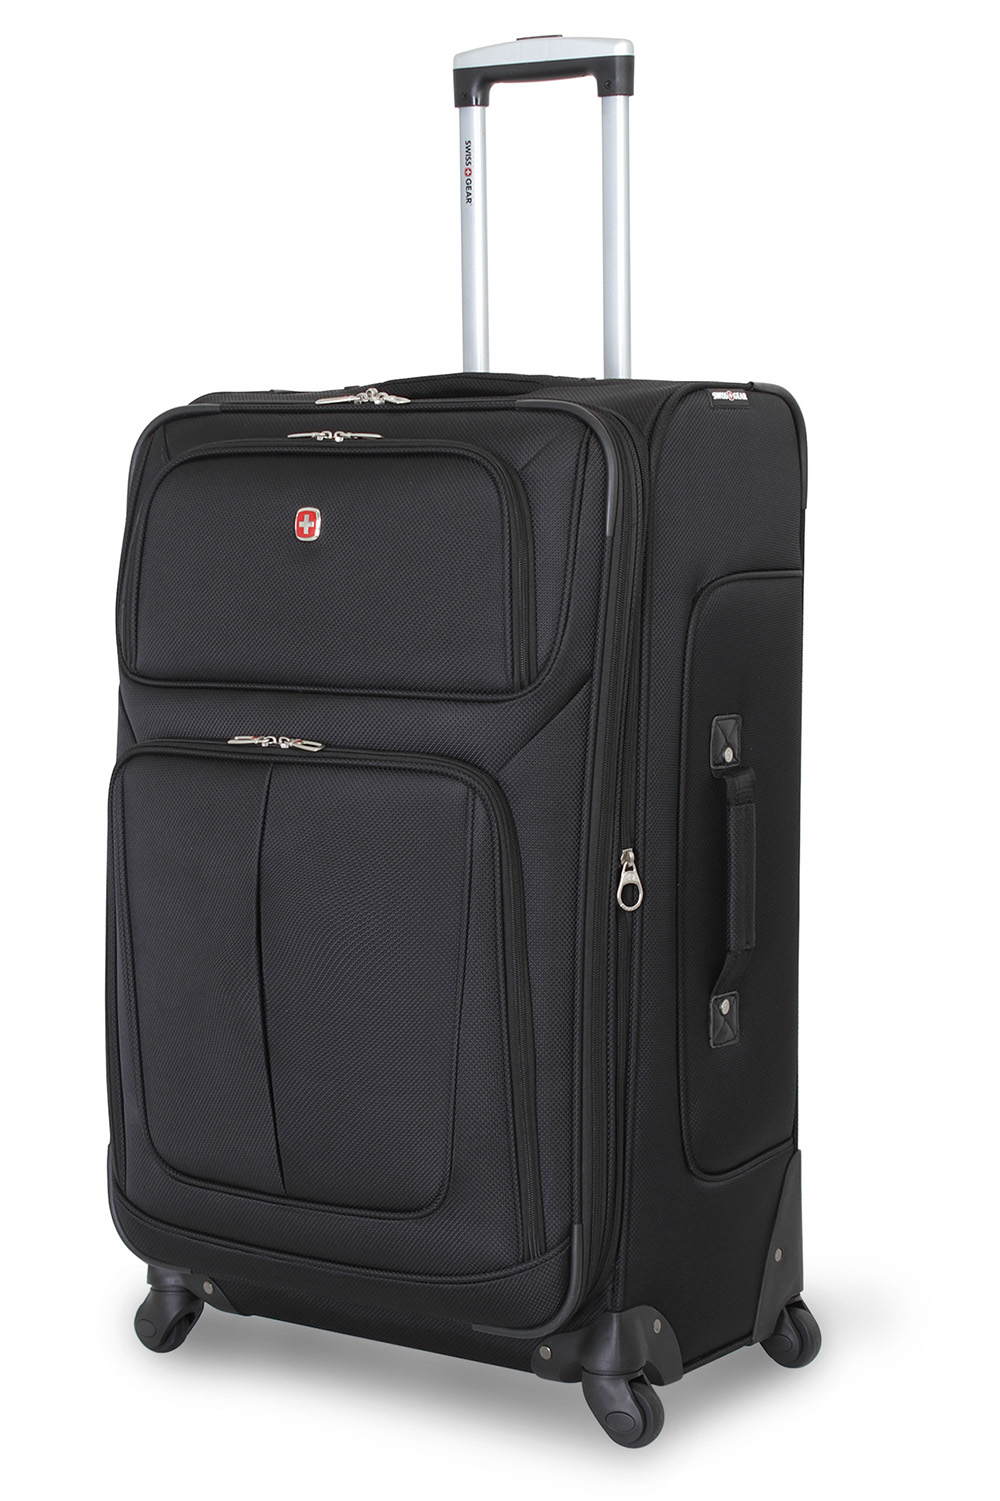 SWISSGEAR 6283 29 Expandable Spinner - Black Luggage